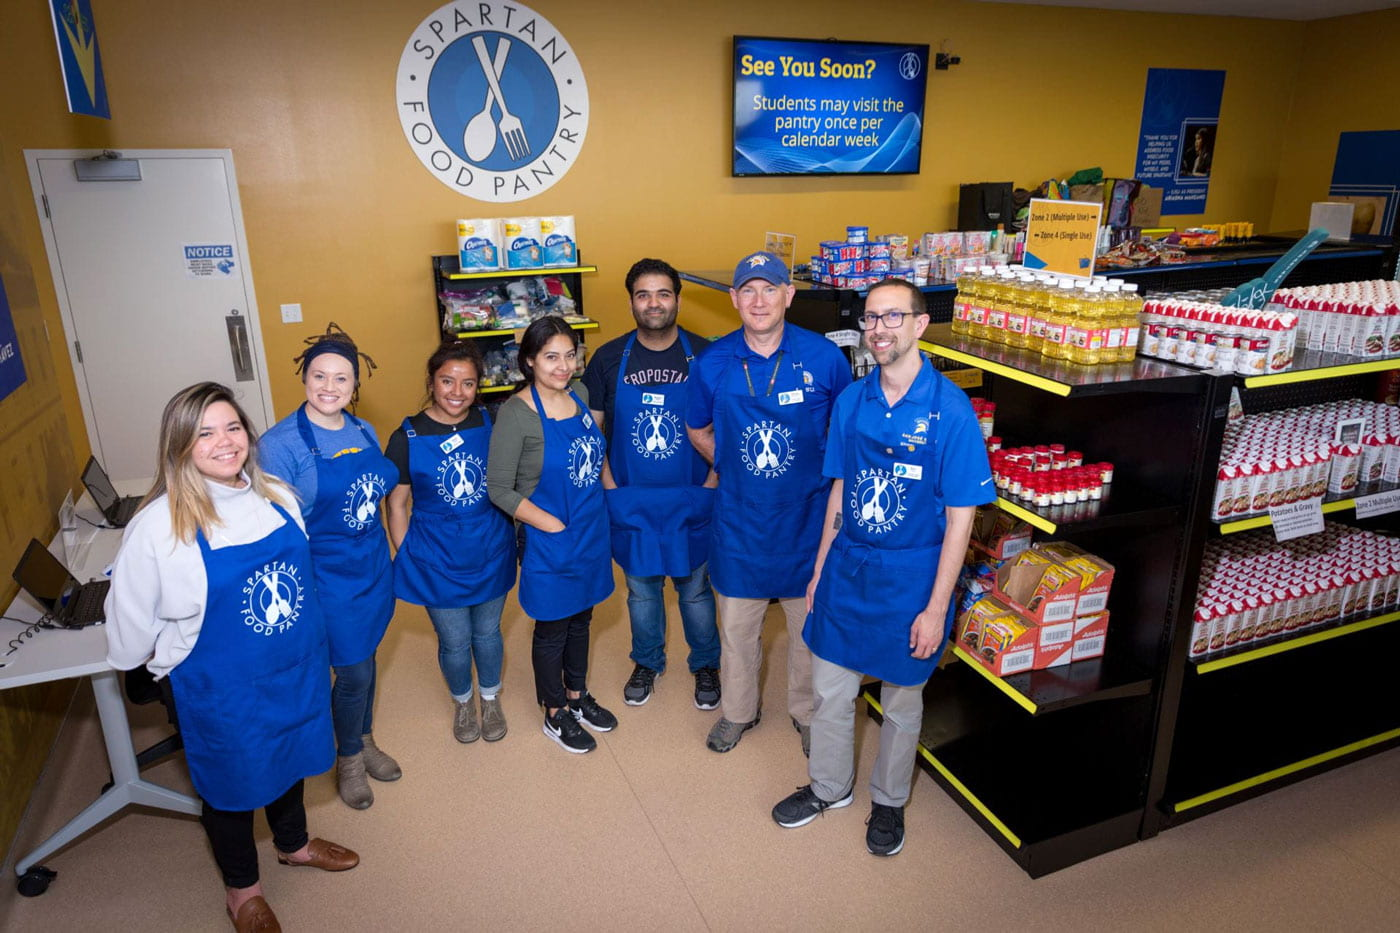 Food Pantry employees in blue aprons.